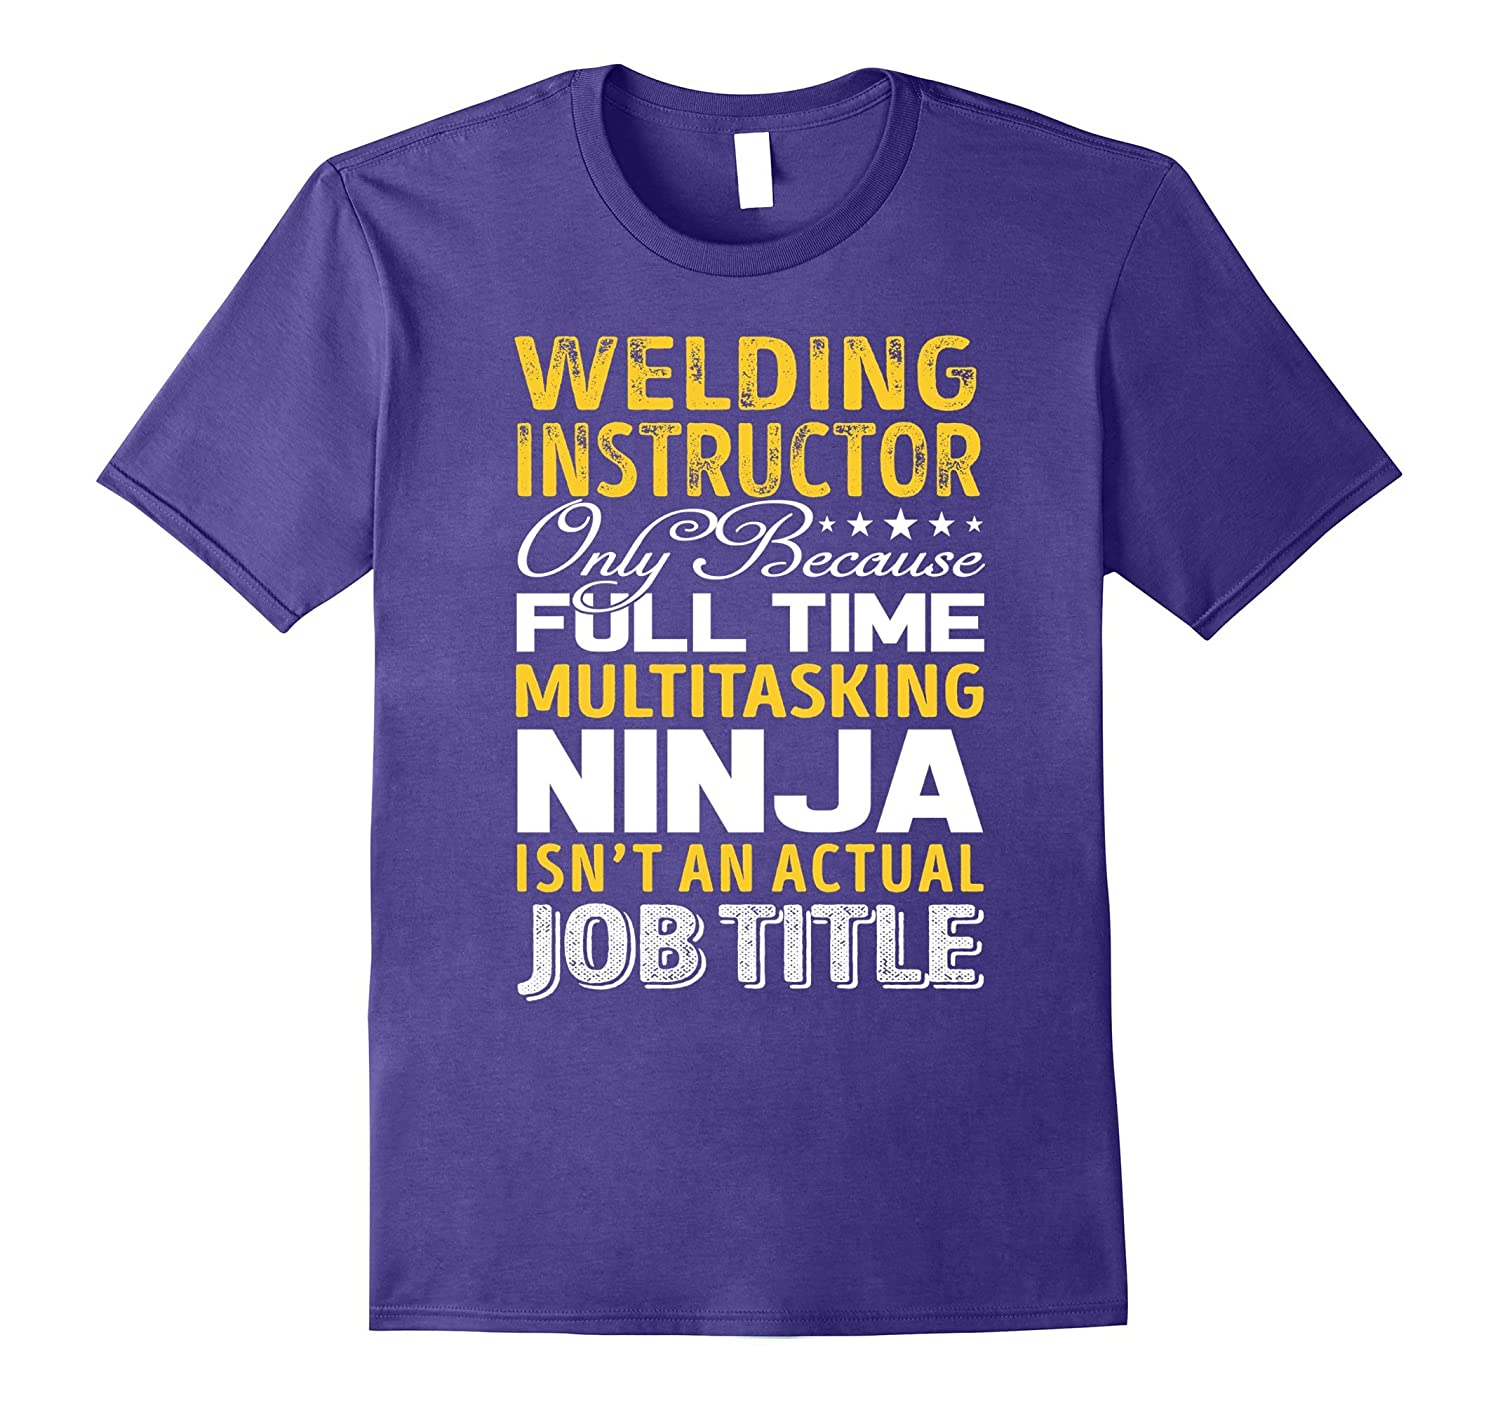 Welding Instructor Is Not An Actual Job Title TShirt-TJ